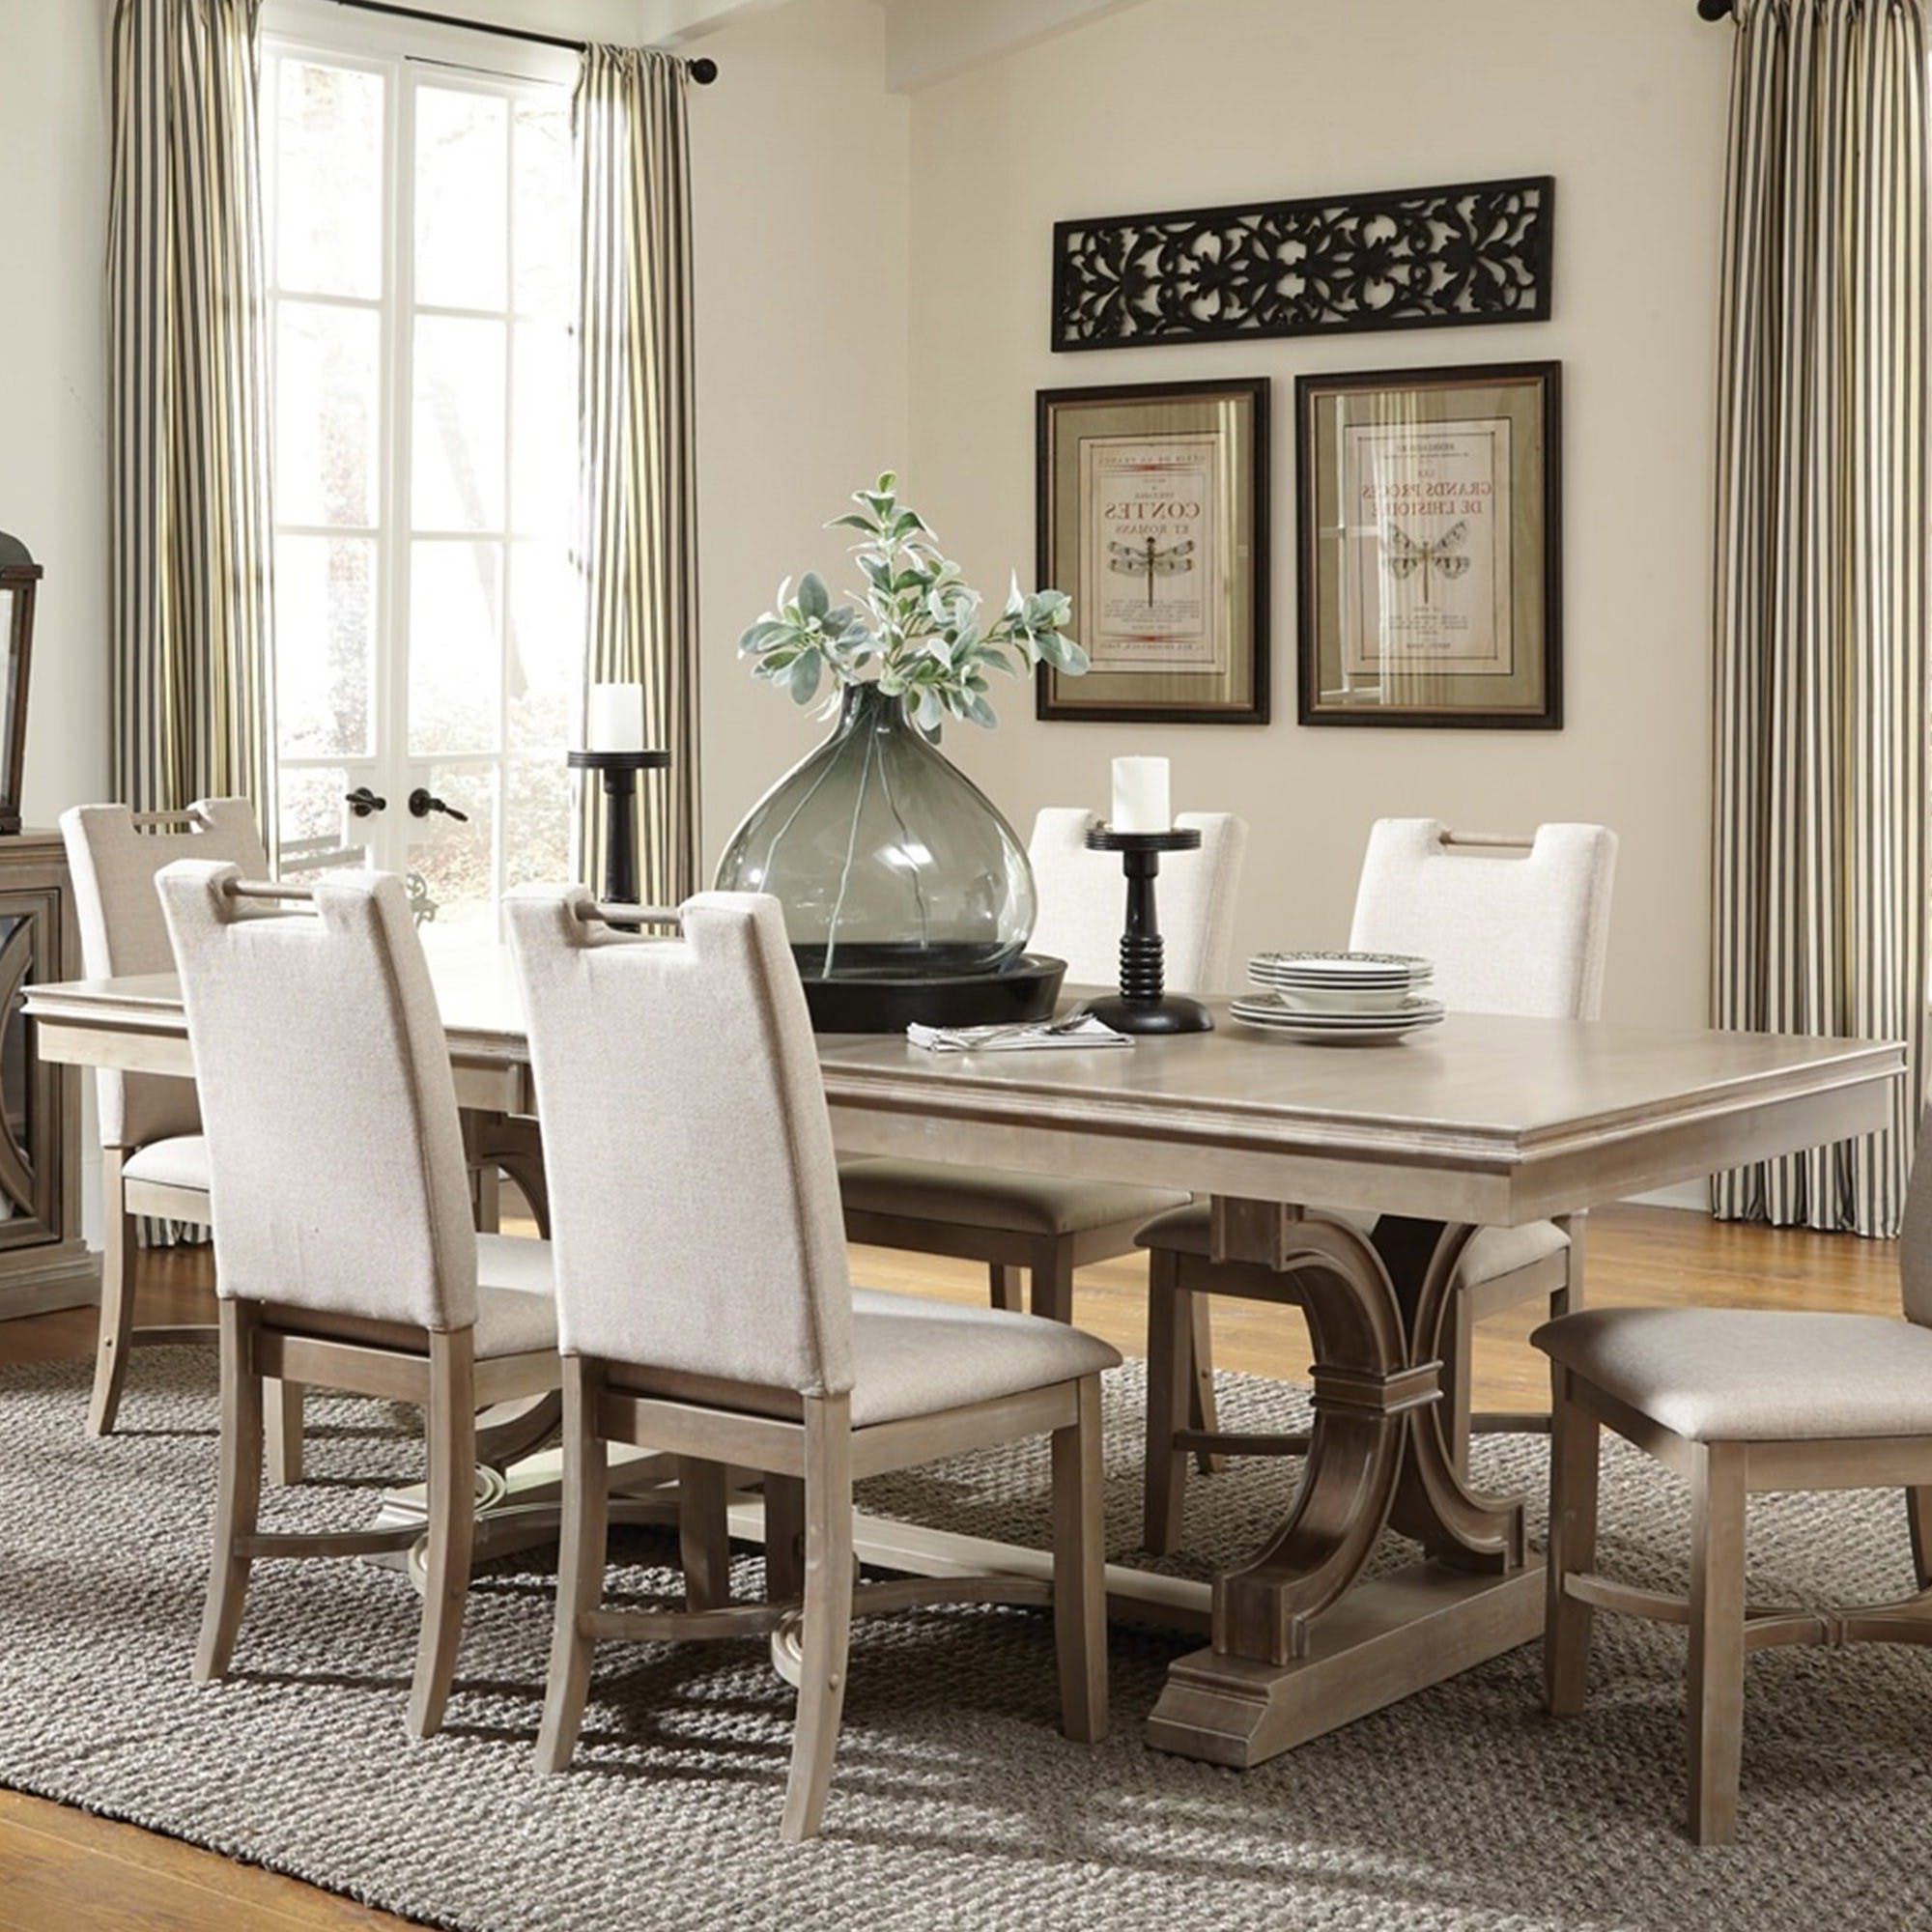 Sonoma Rectangular Dining Table – Bernie & Phyl's Furniture With Regard To Preferred Transitional Rectangular Dining Tables (View 14 of 30)